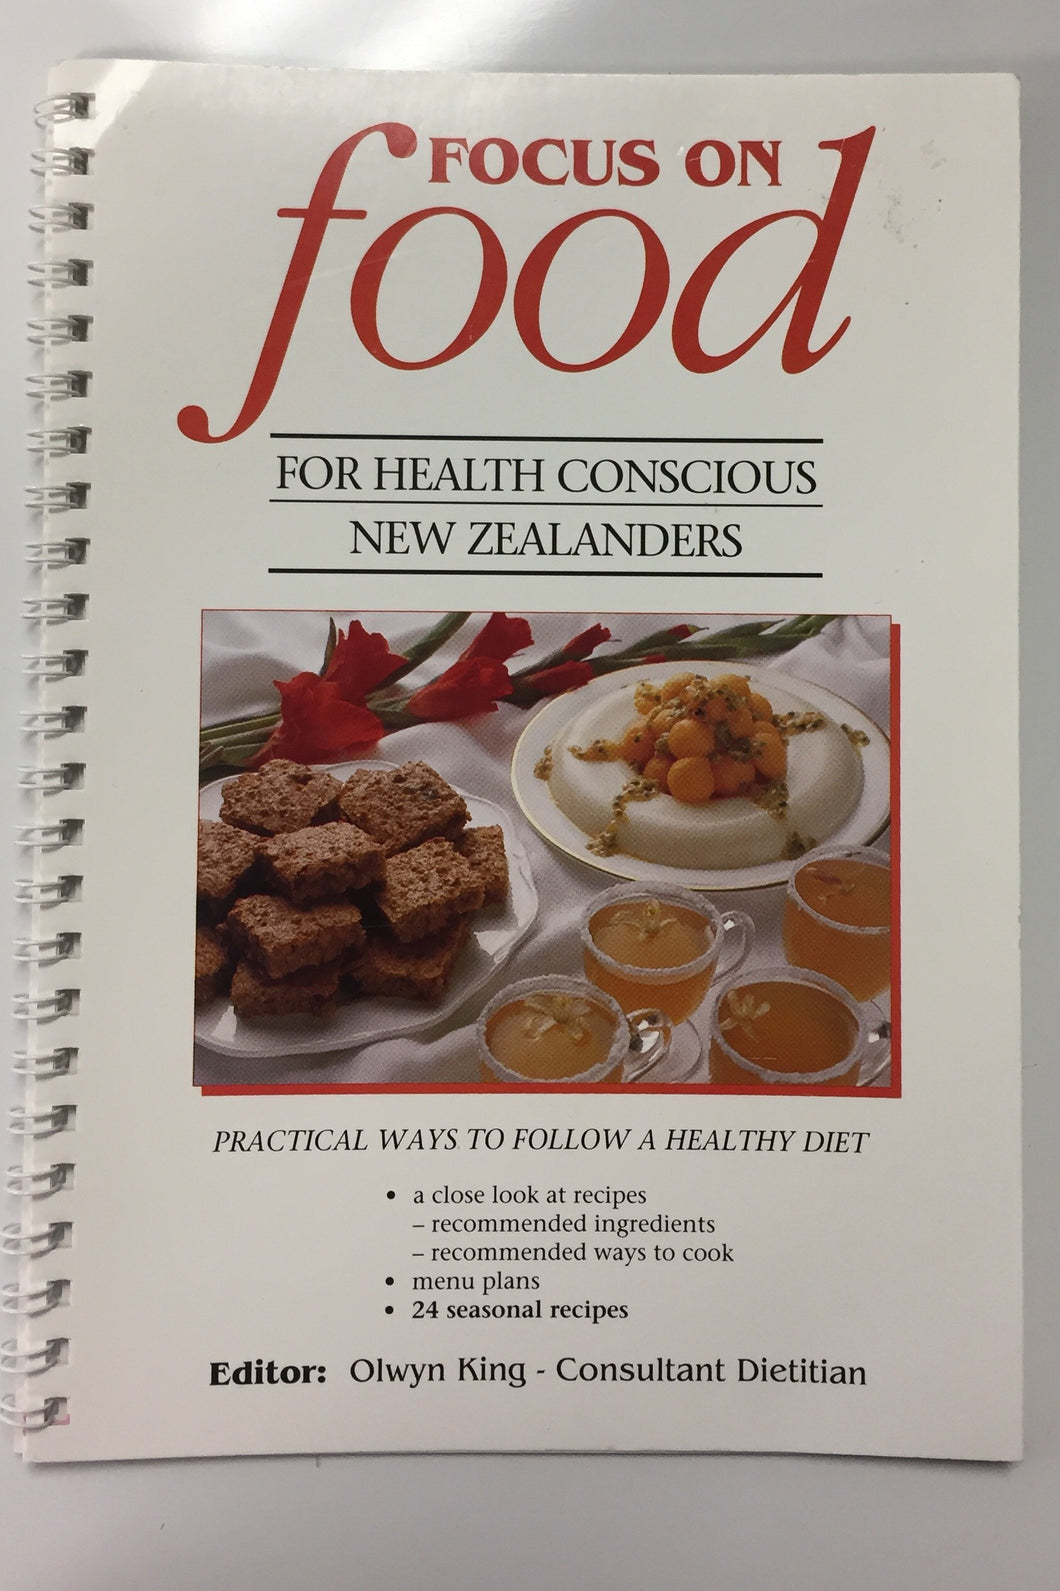 Focus on Food: For Health Conscious New Zealanders